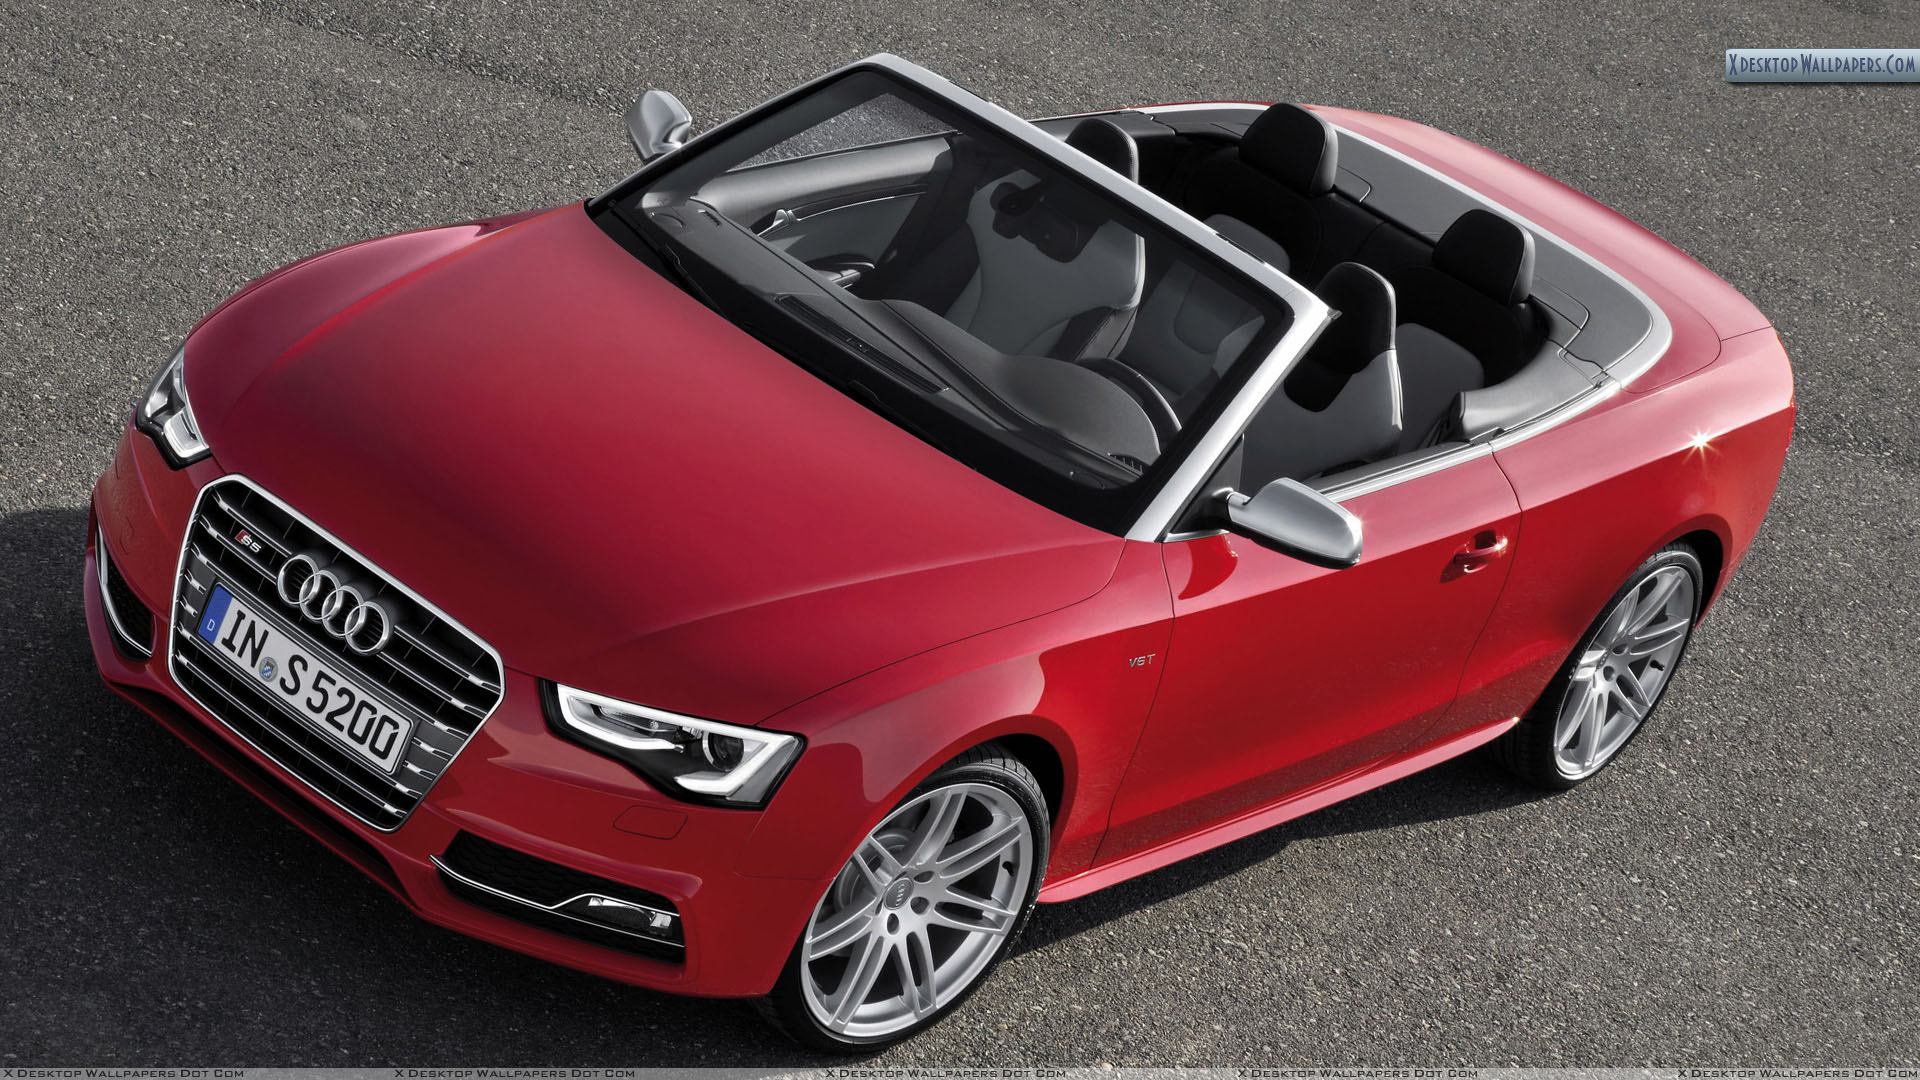 2012 audi s5 cabriolet front top view wallpaper. Black Bedroom Furniture Sets. Home Design Ideas